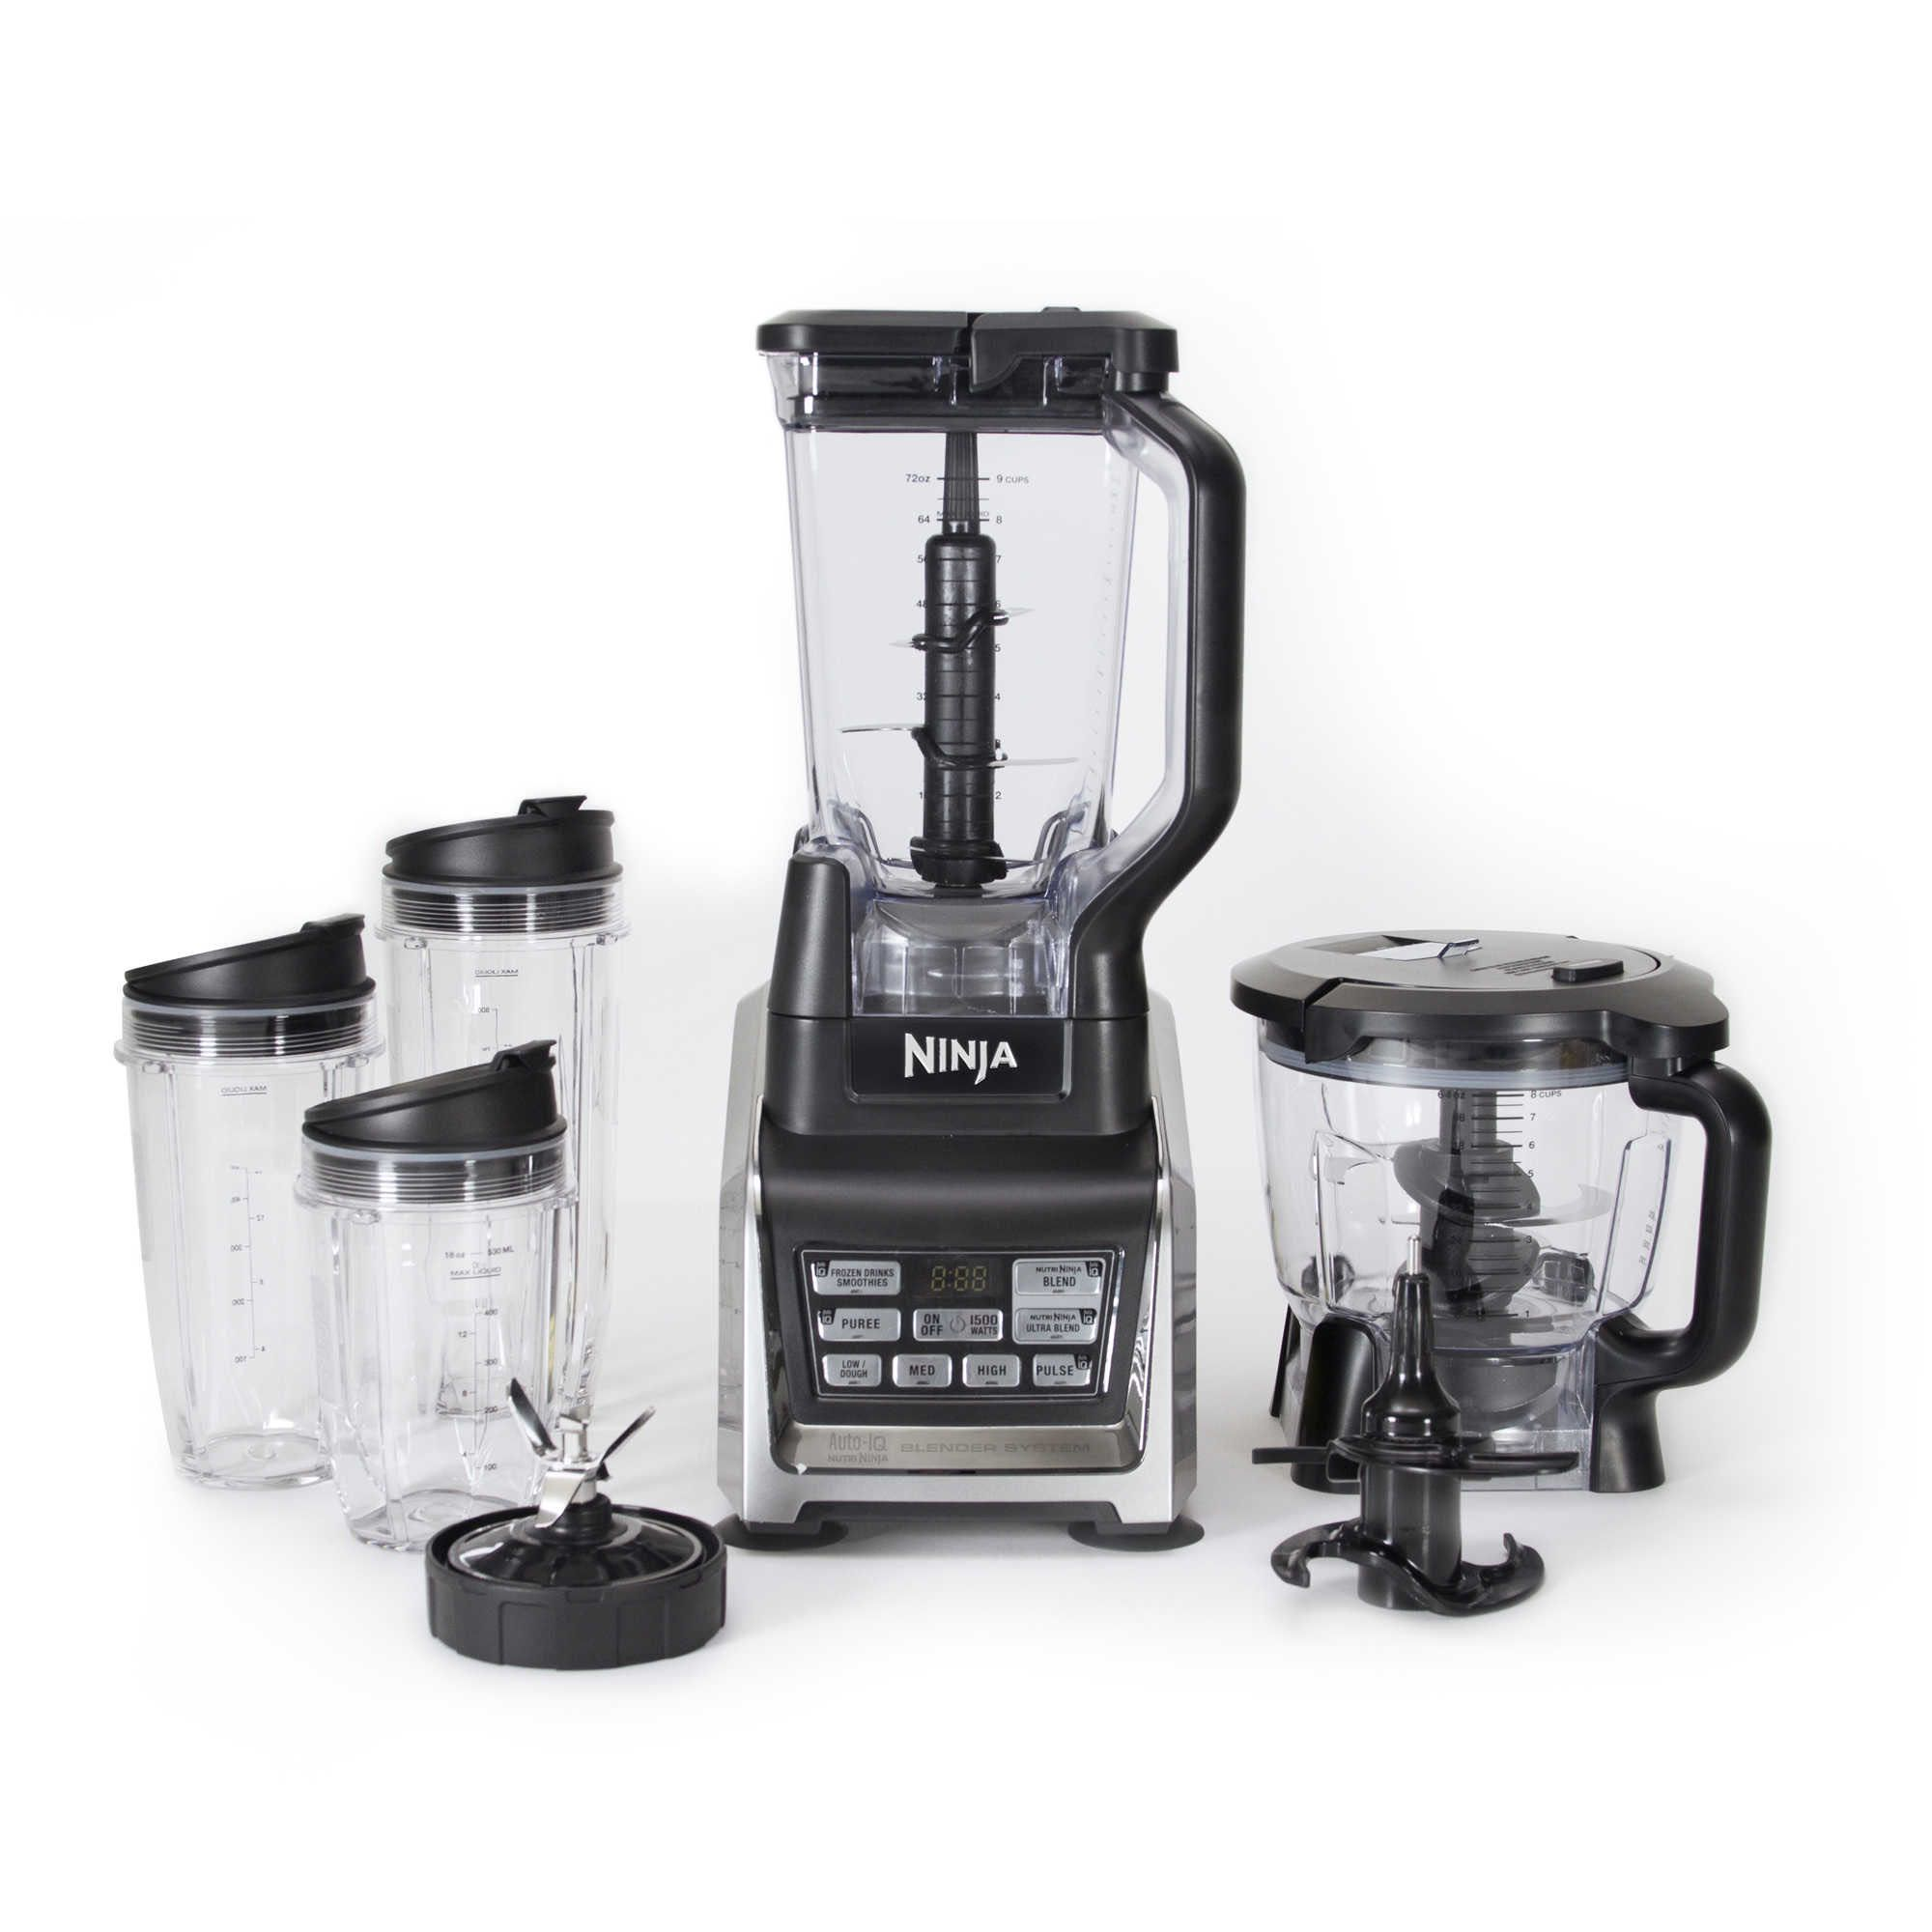 Nutri Ninja Blender System with Auto-iQ #BL682 Review